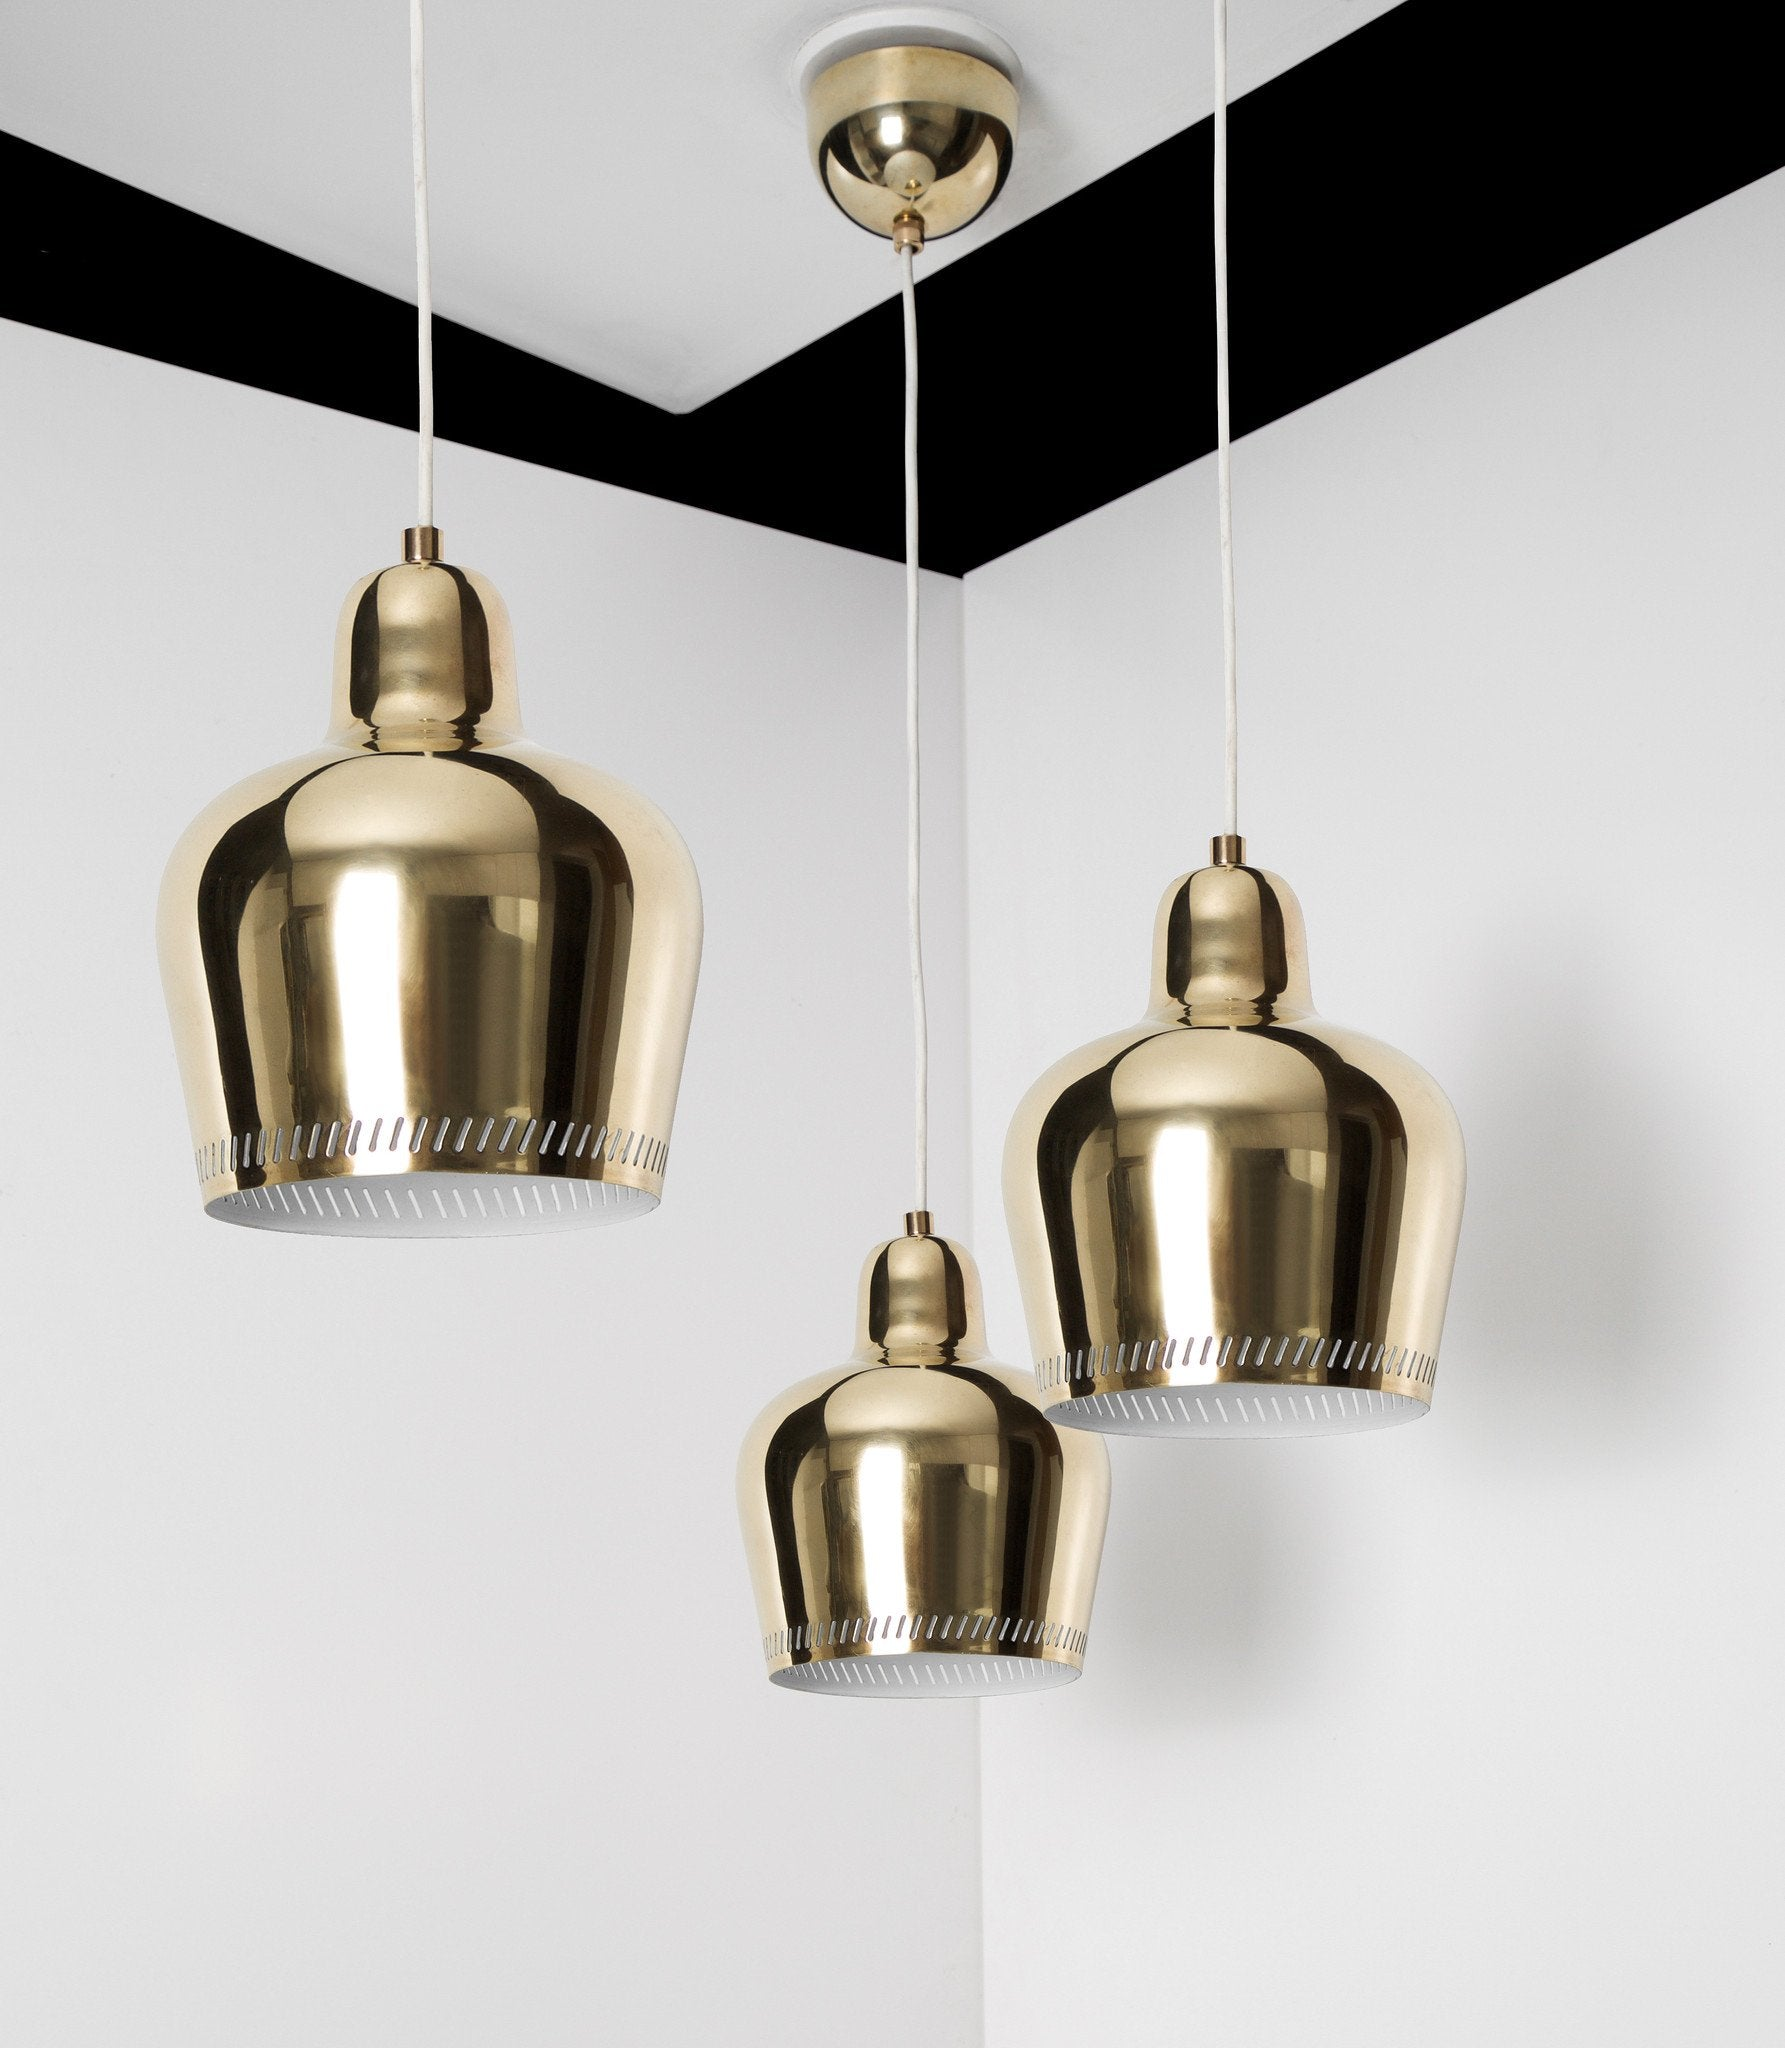 Paavo Tynell & Alvar Aalto, Set of Three Rare Golden Bell Pendants, 1940s